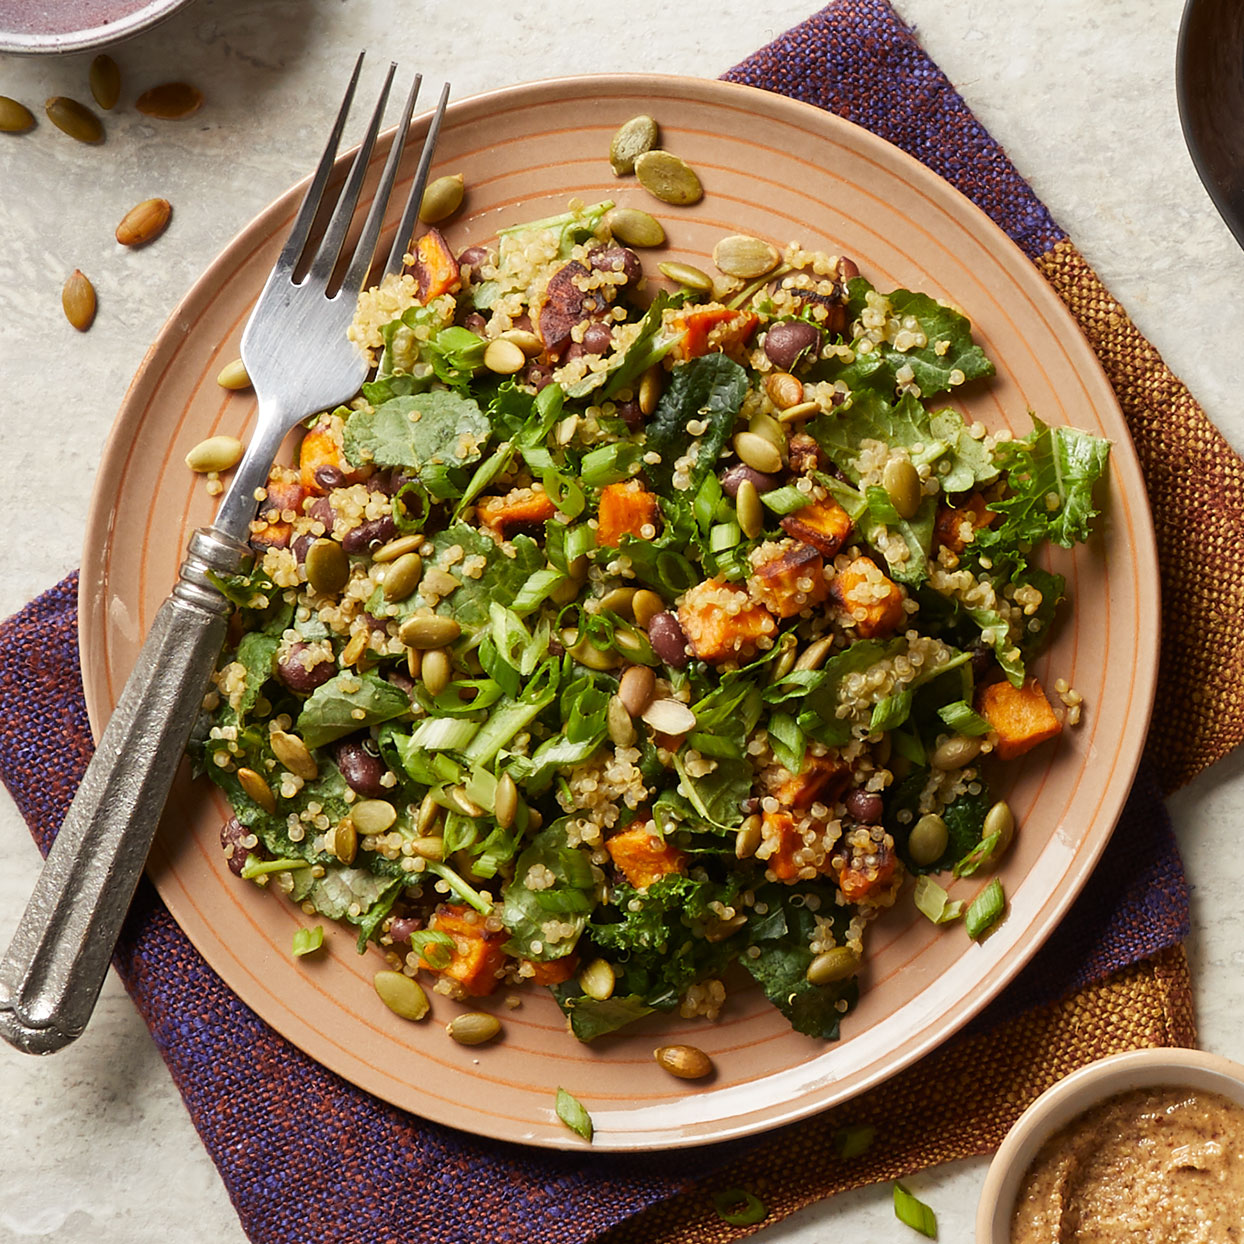 Winter Kale & Quinoa Salad